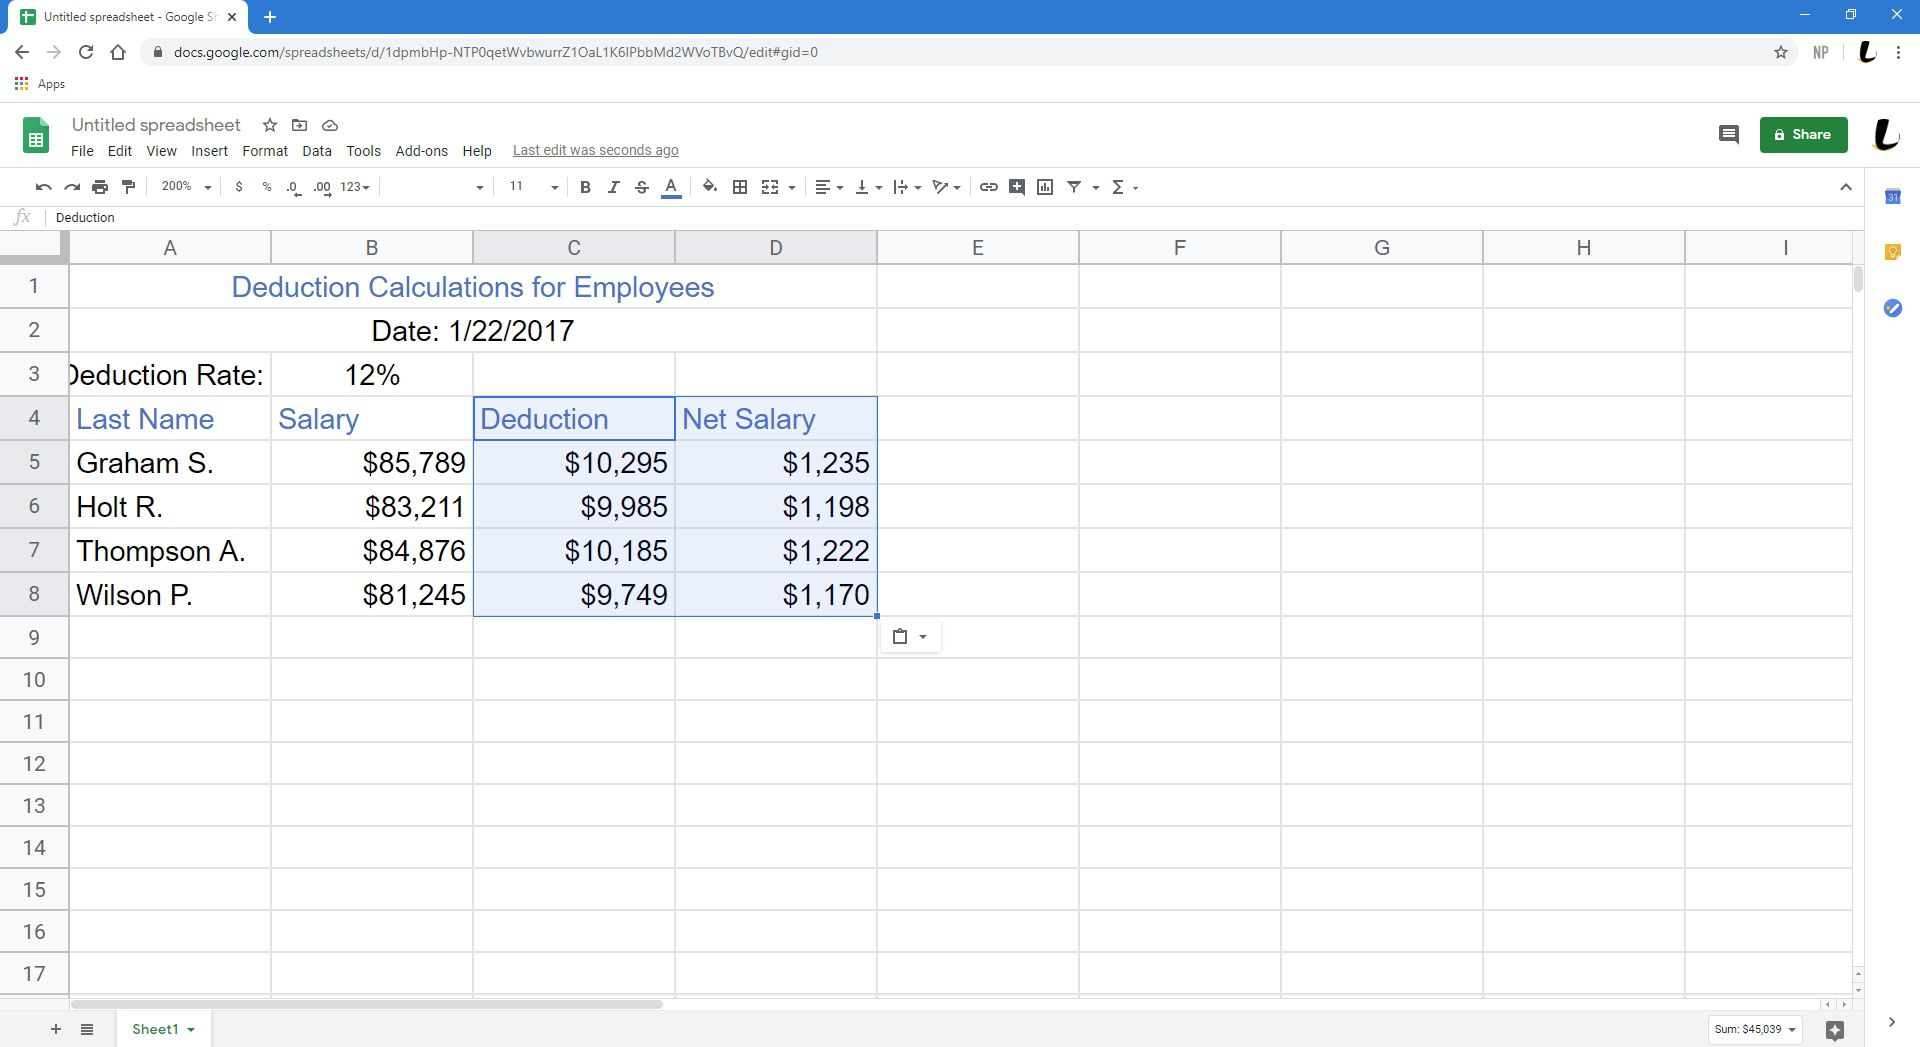 A newly formatted spreadsheet in Sheets.